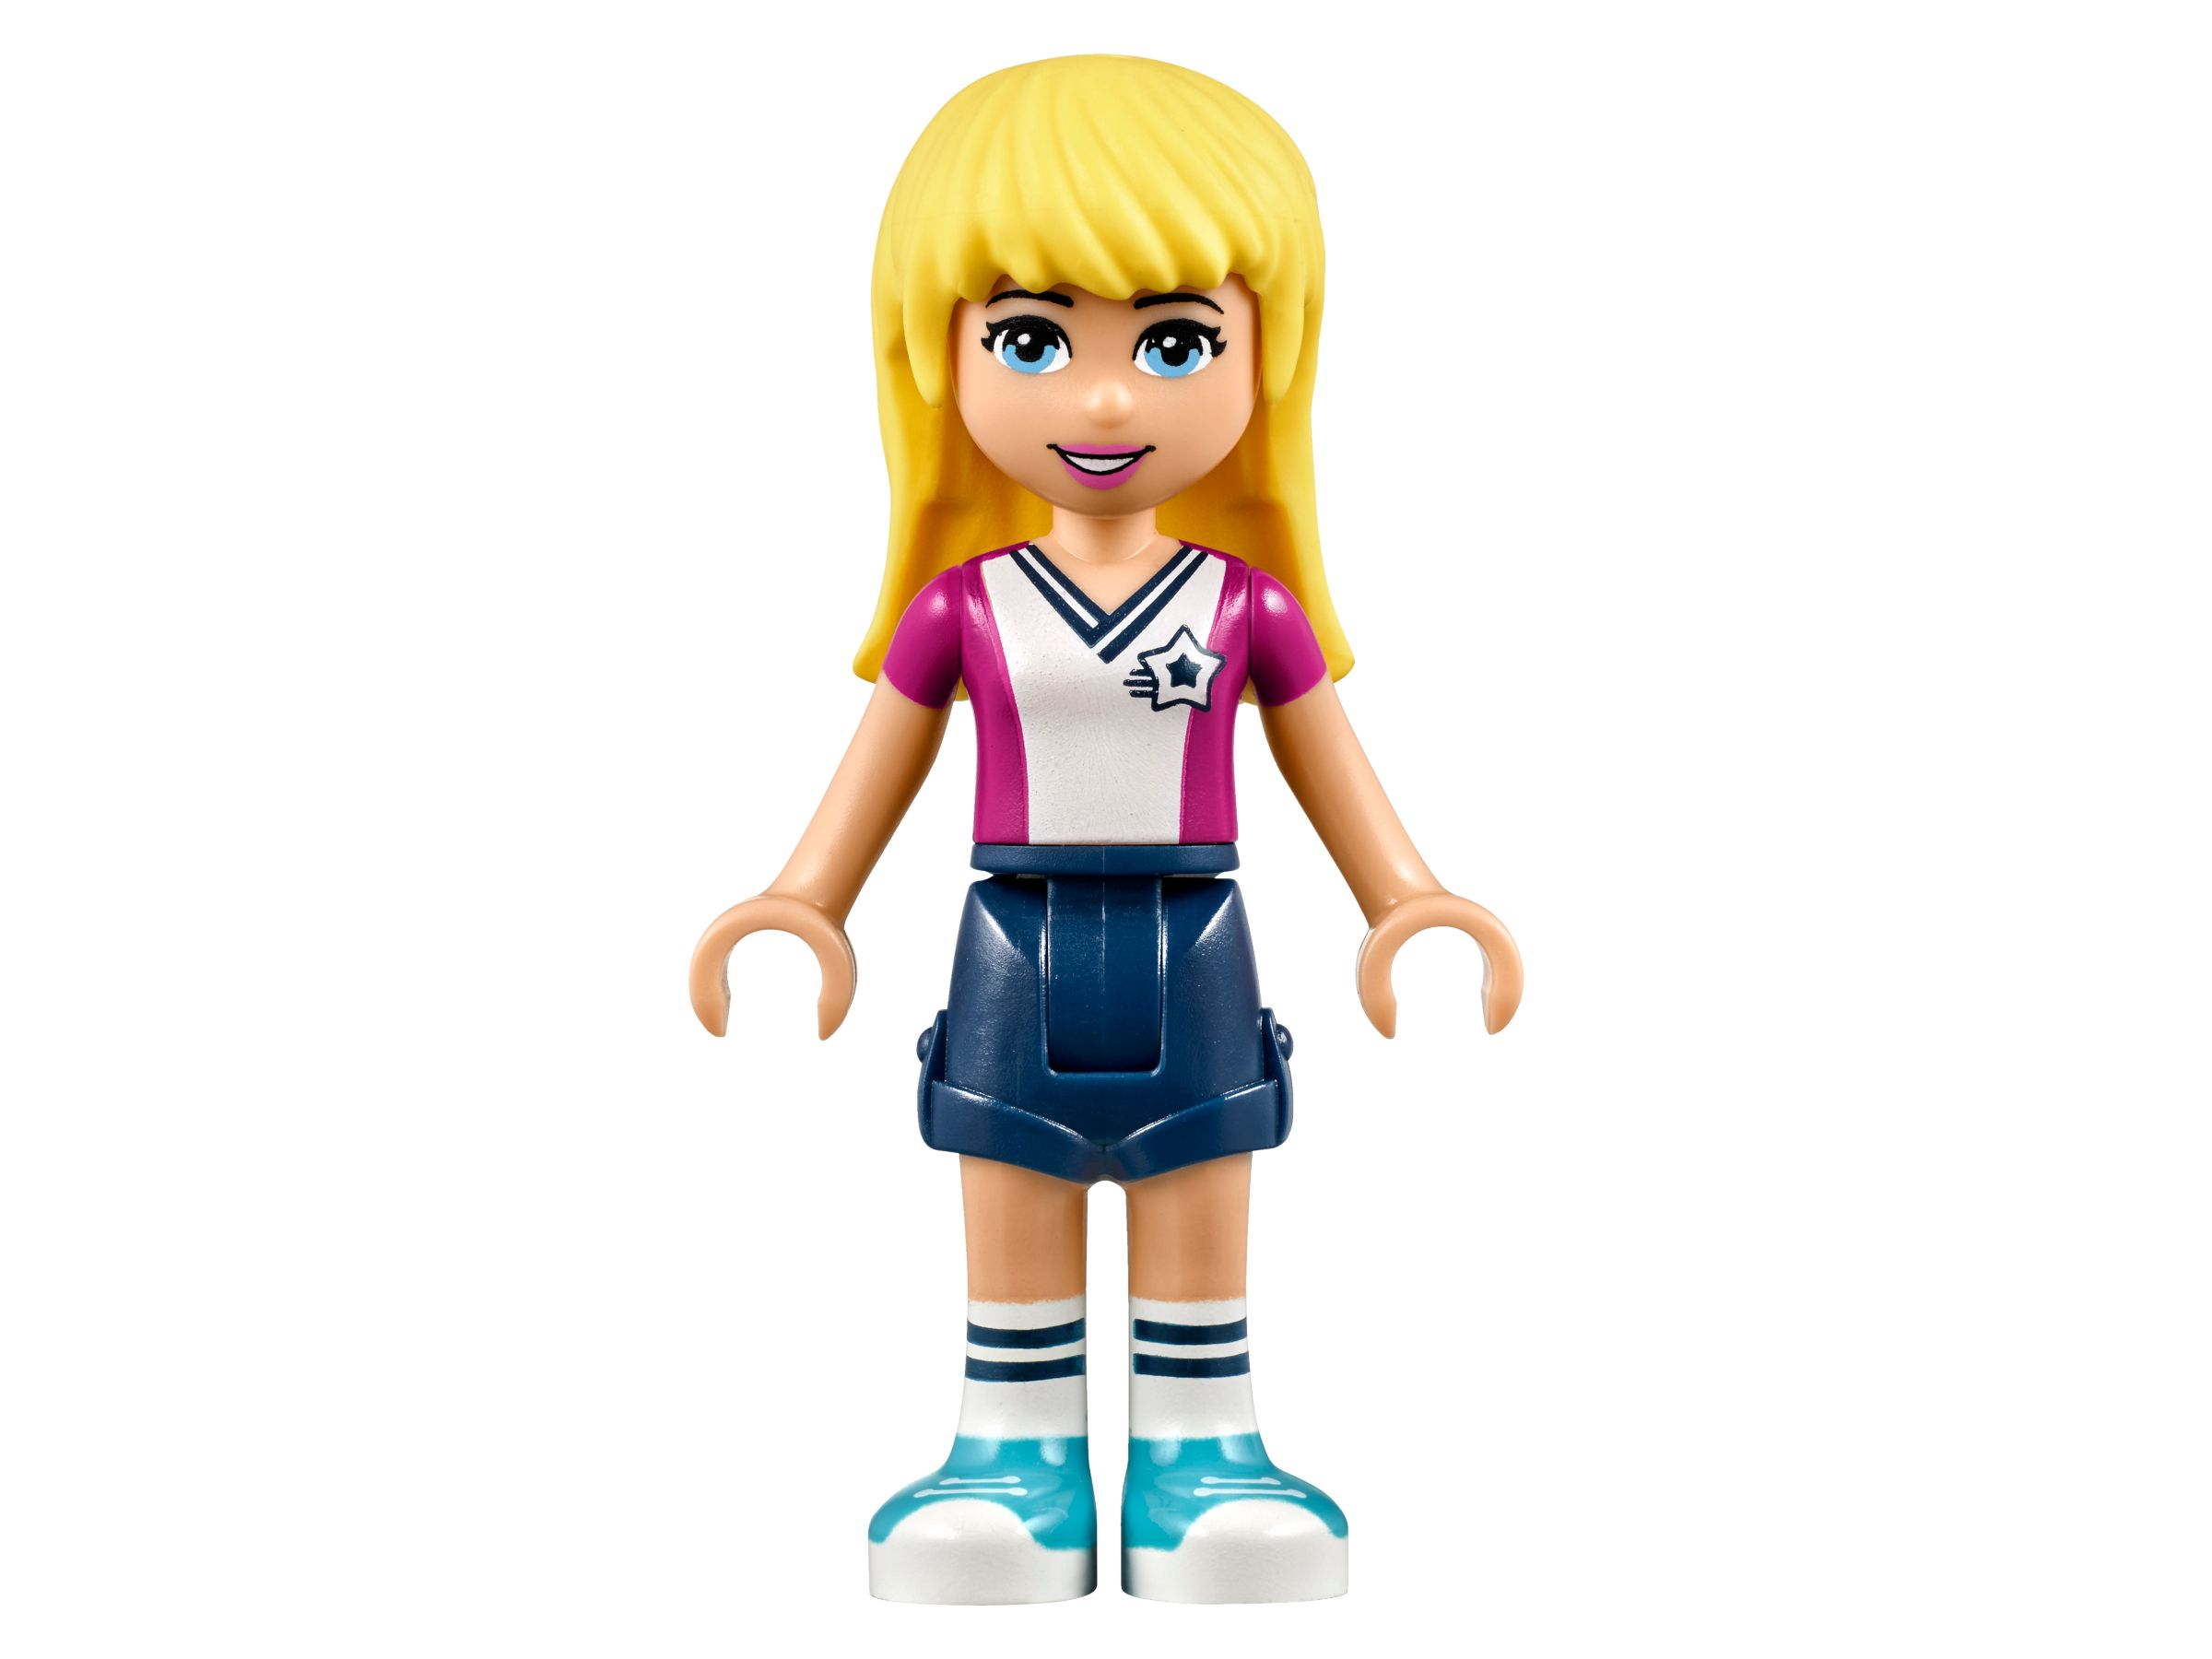 LEGO Friends 41330 Fußballtraining mit Stephanie LEGO_41330_alt9.jpg